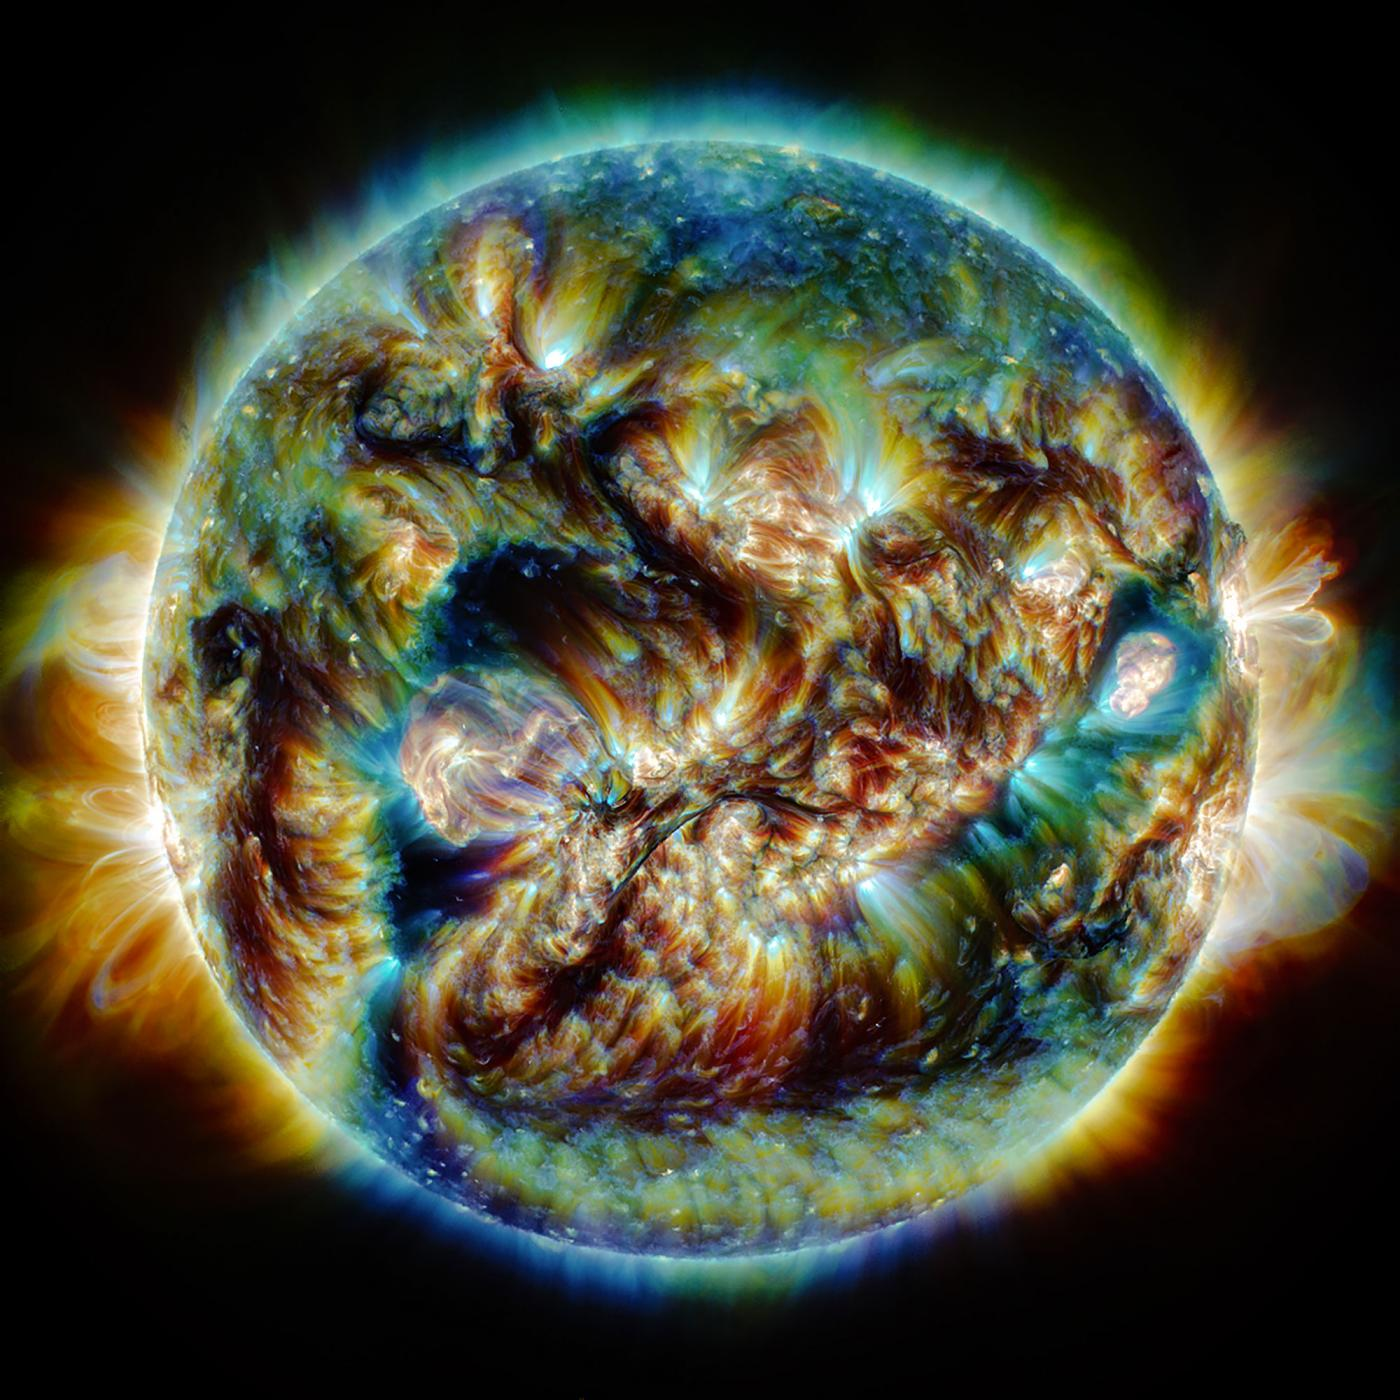 An image showing 'The Tumult of the Sun'